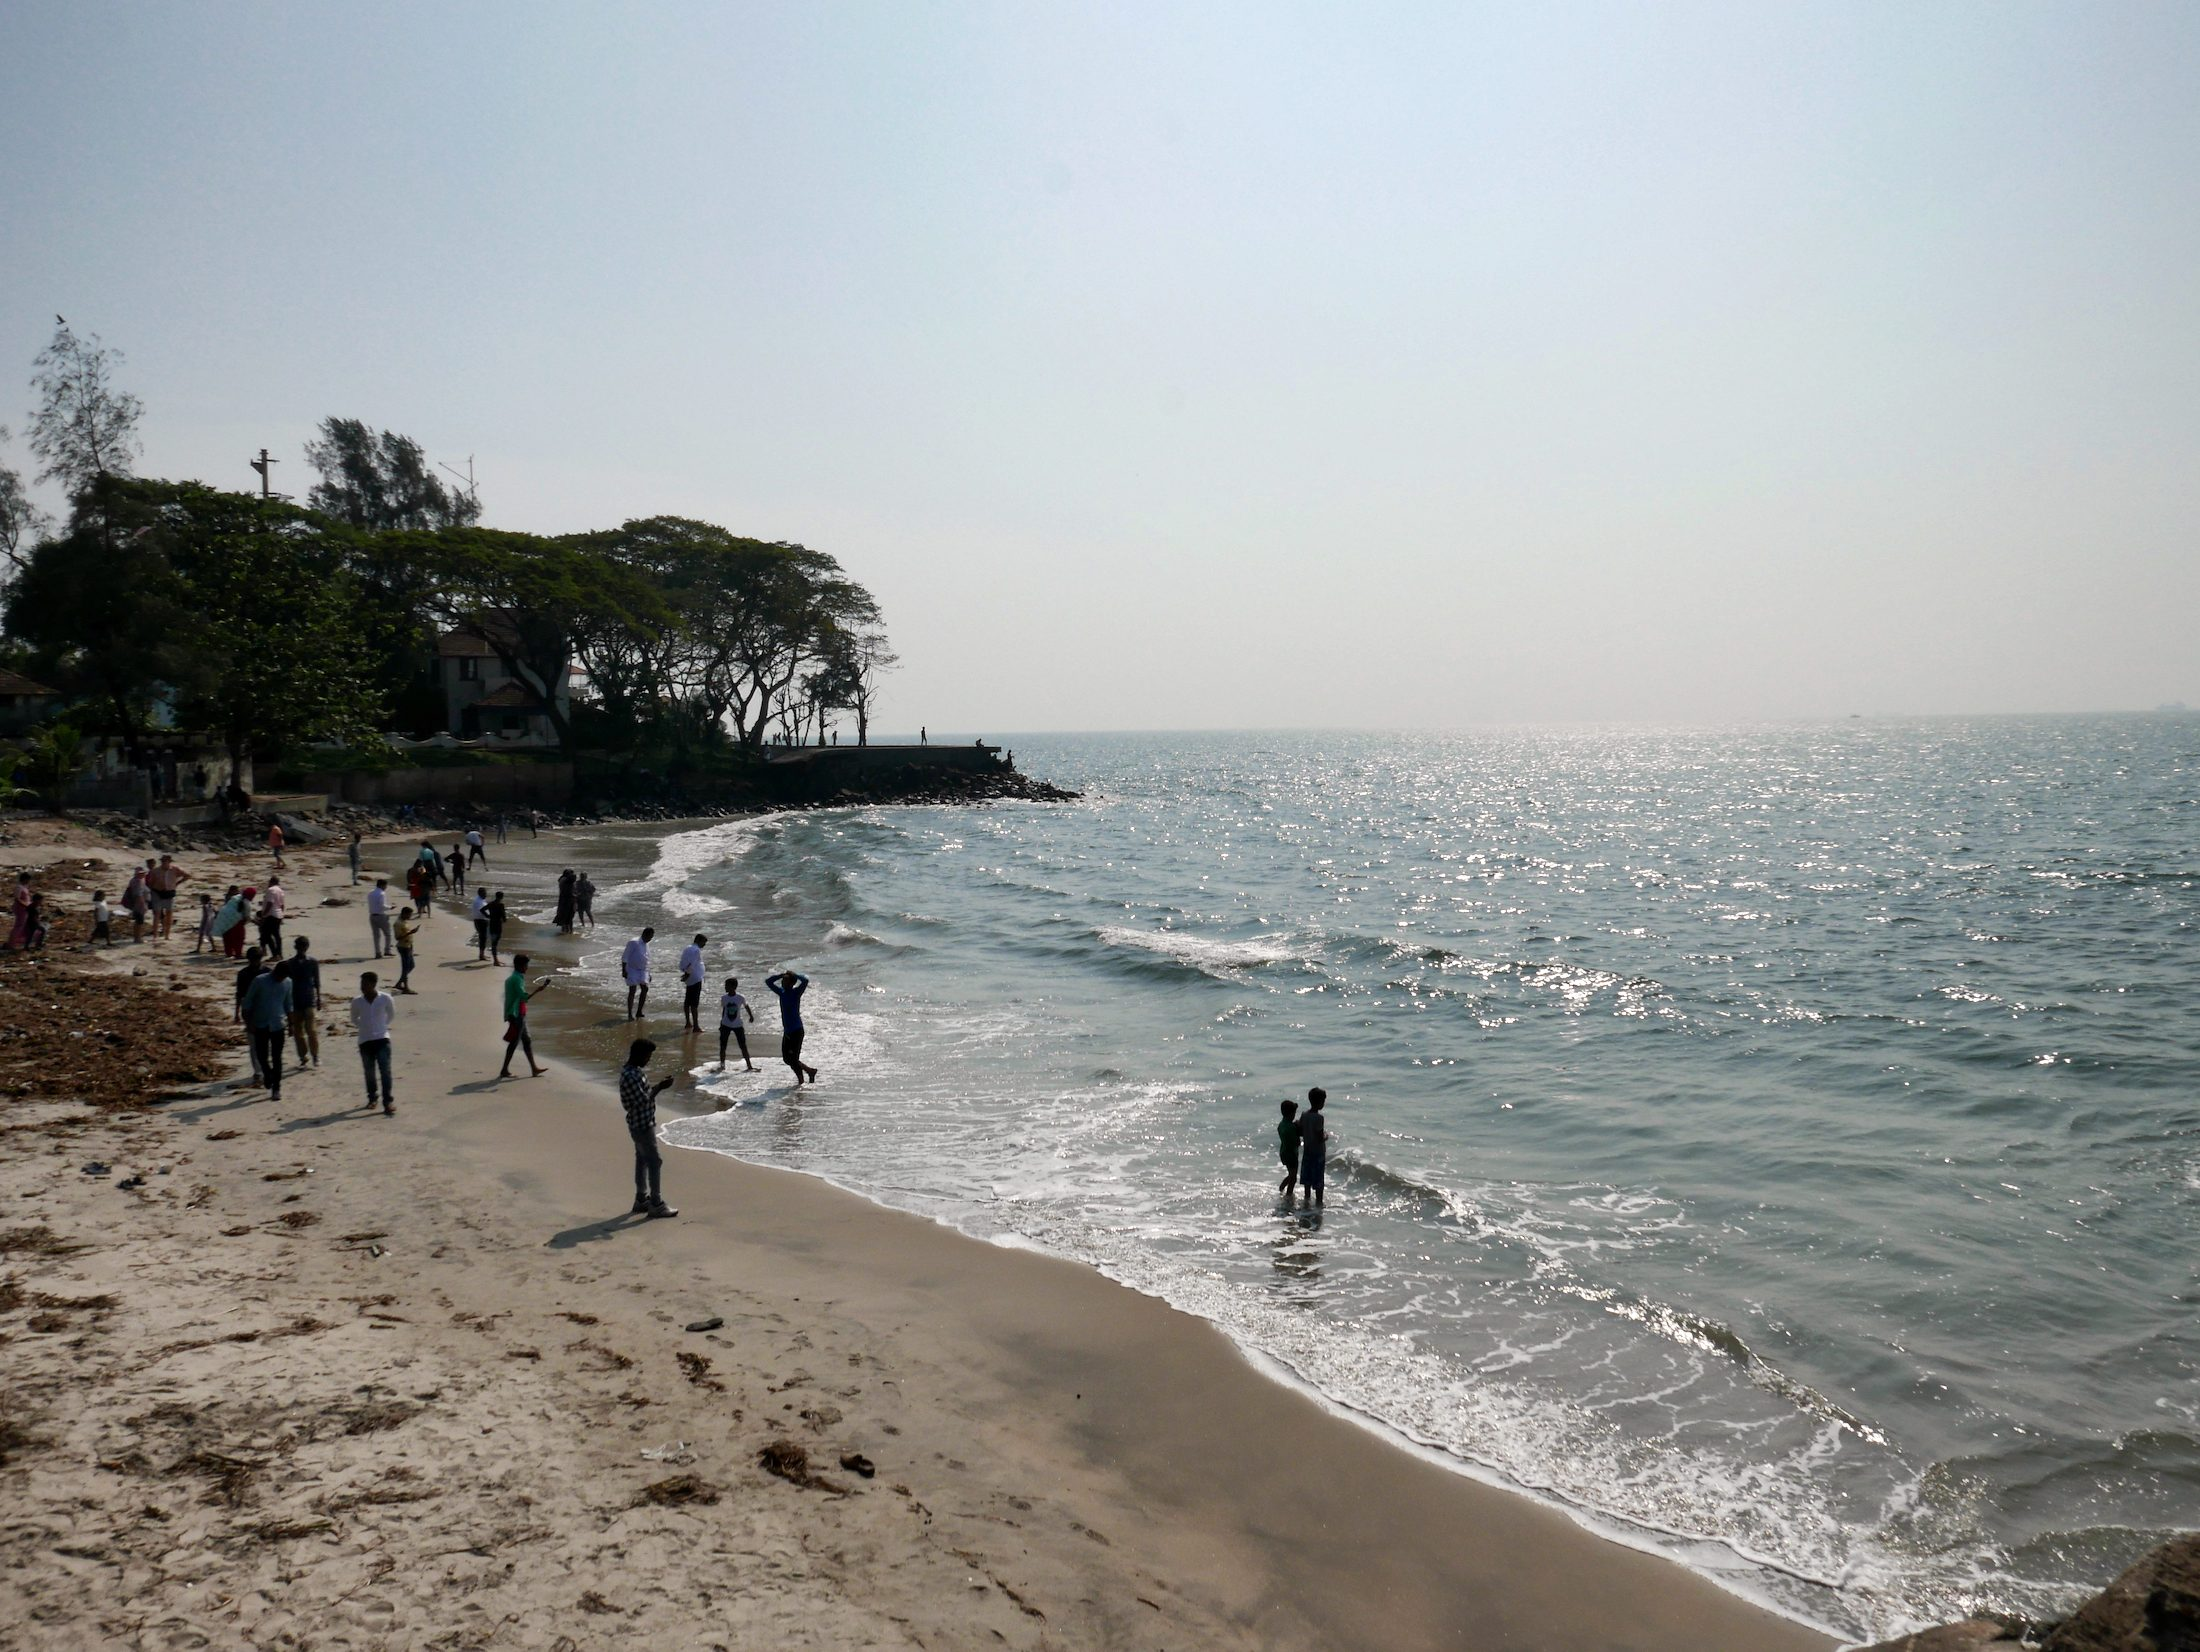 Kids in the sea at Fort Kochi